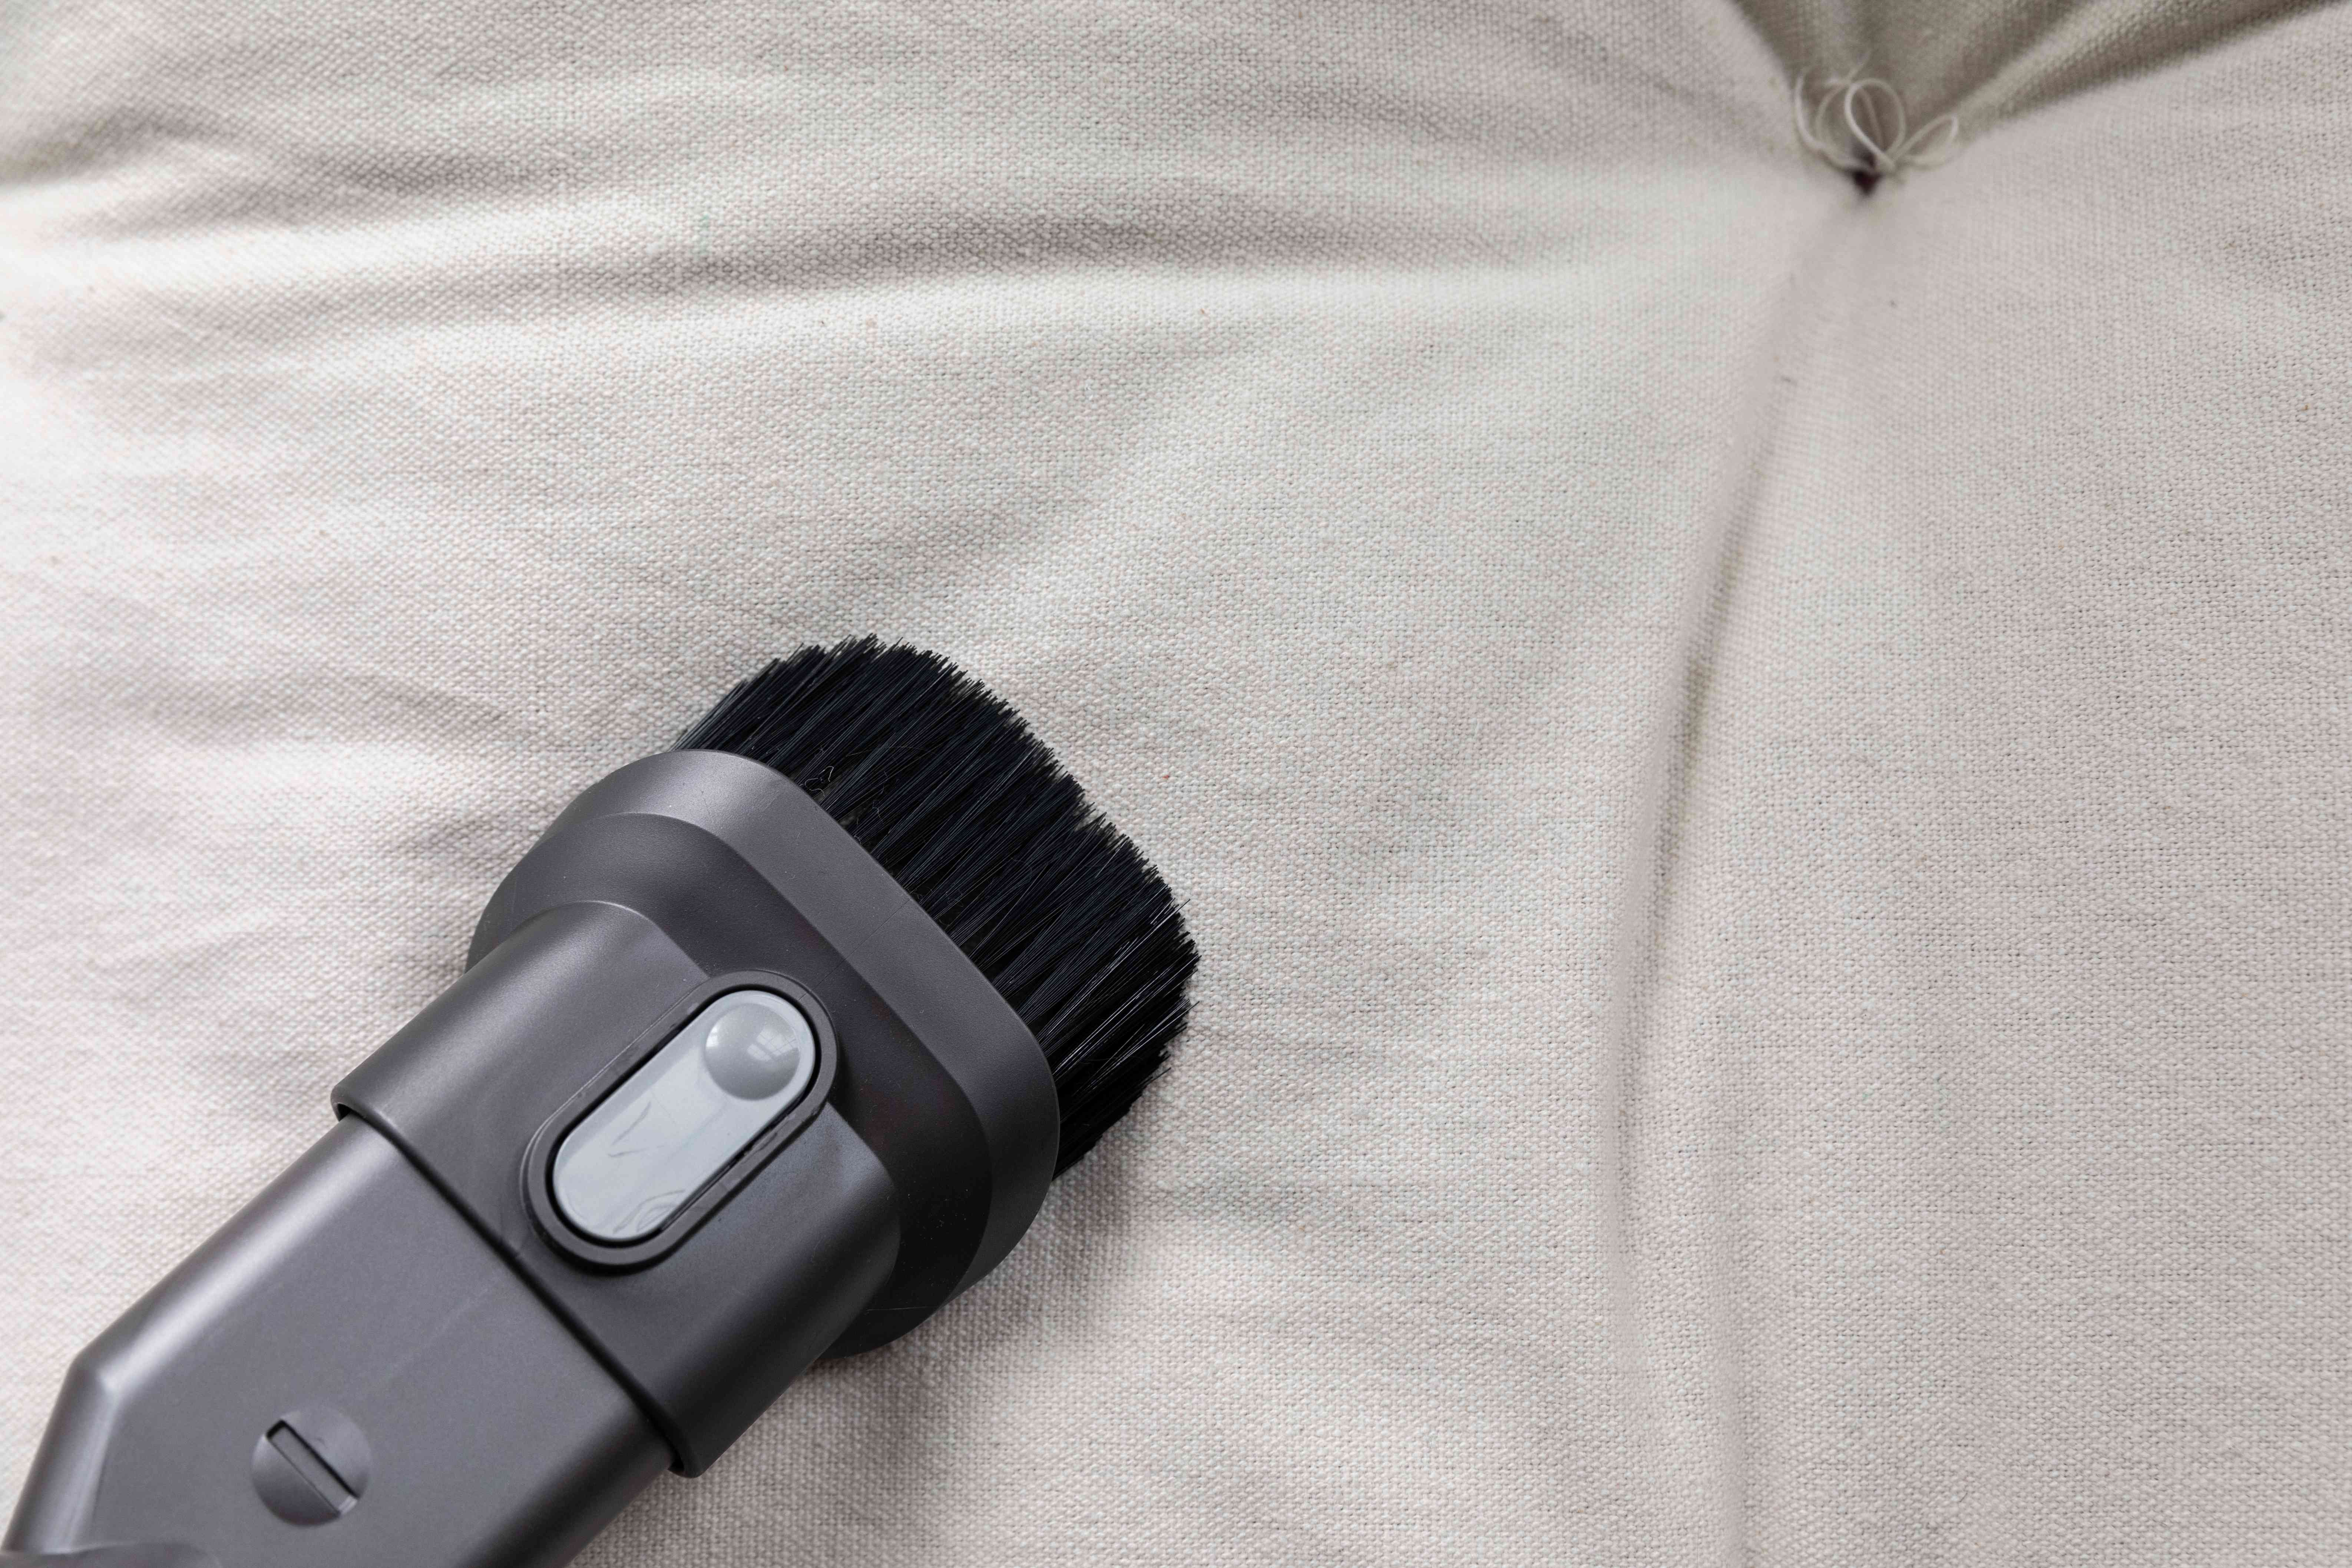 vacuuming the upholstery after stain removal